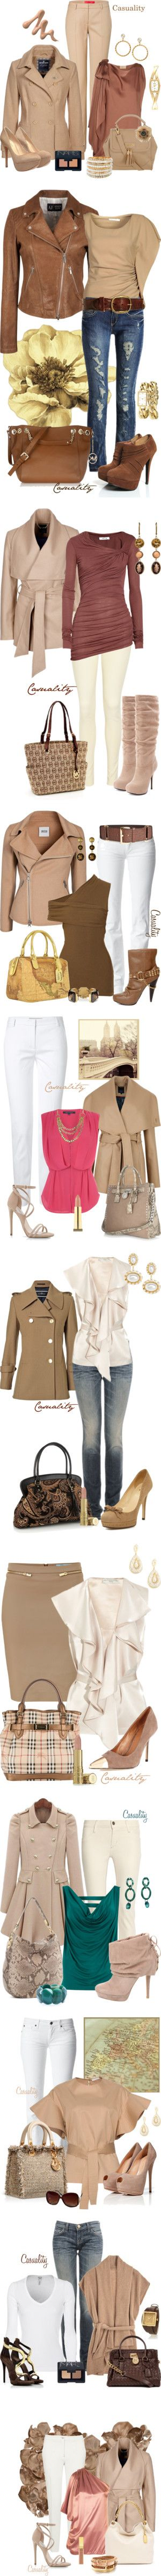 """""""Creme/Neutrals"""" by casuality on Polyvore"""